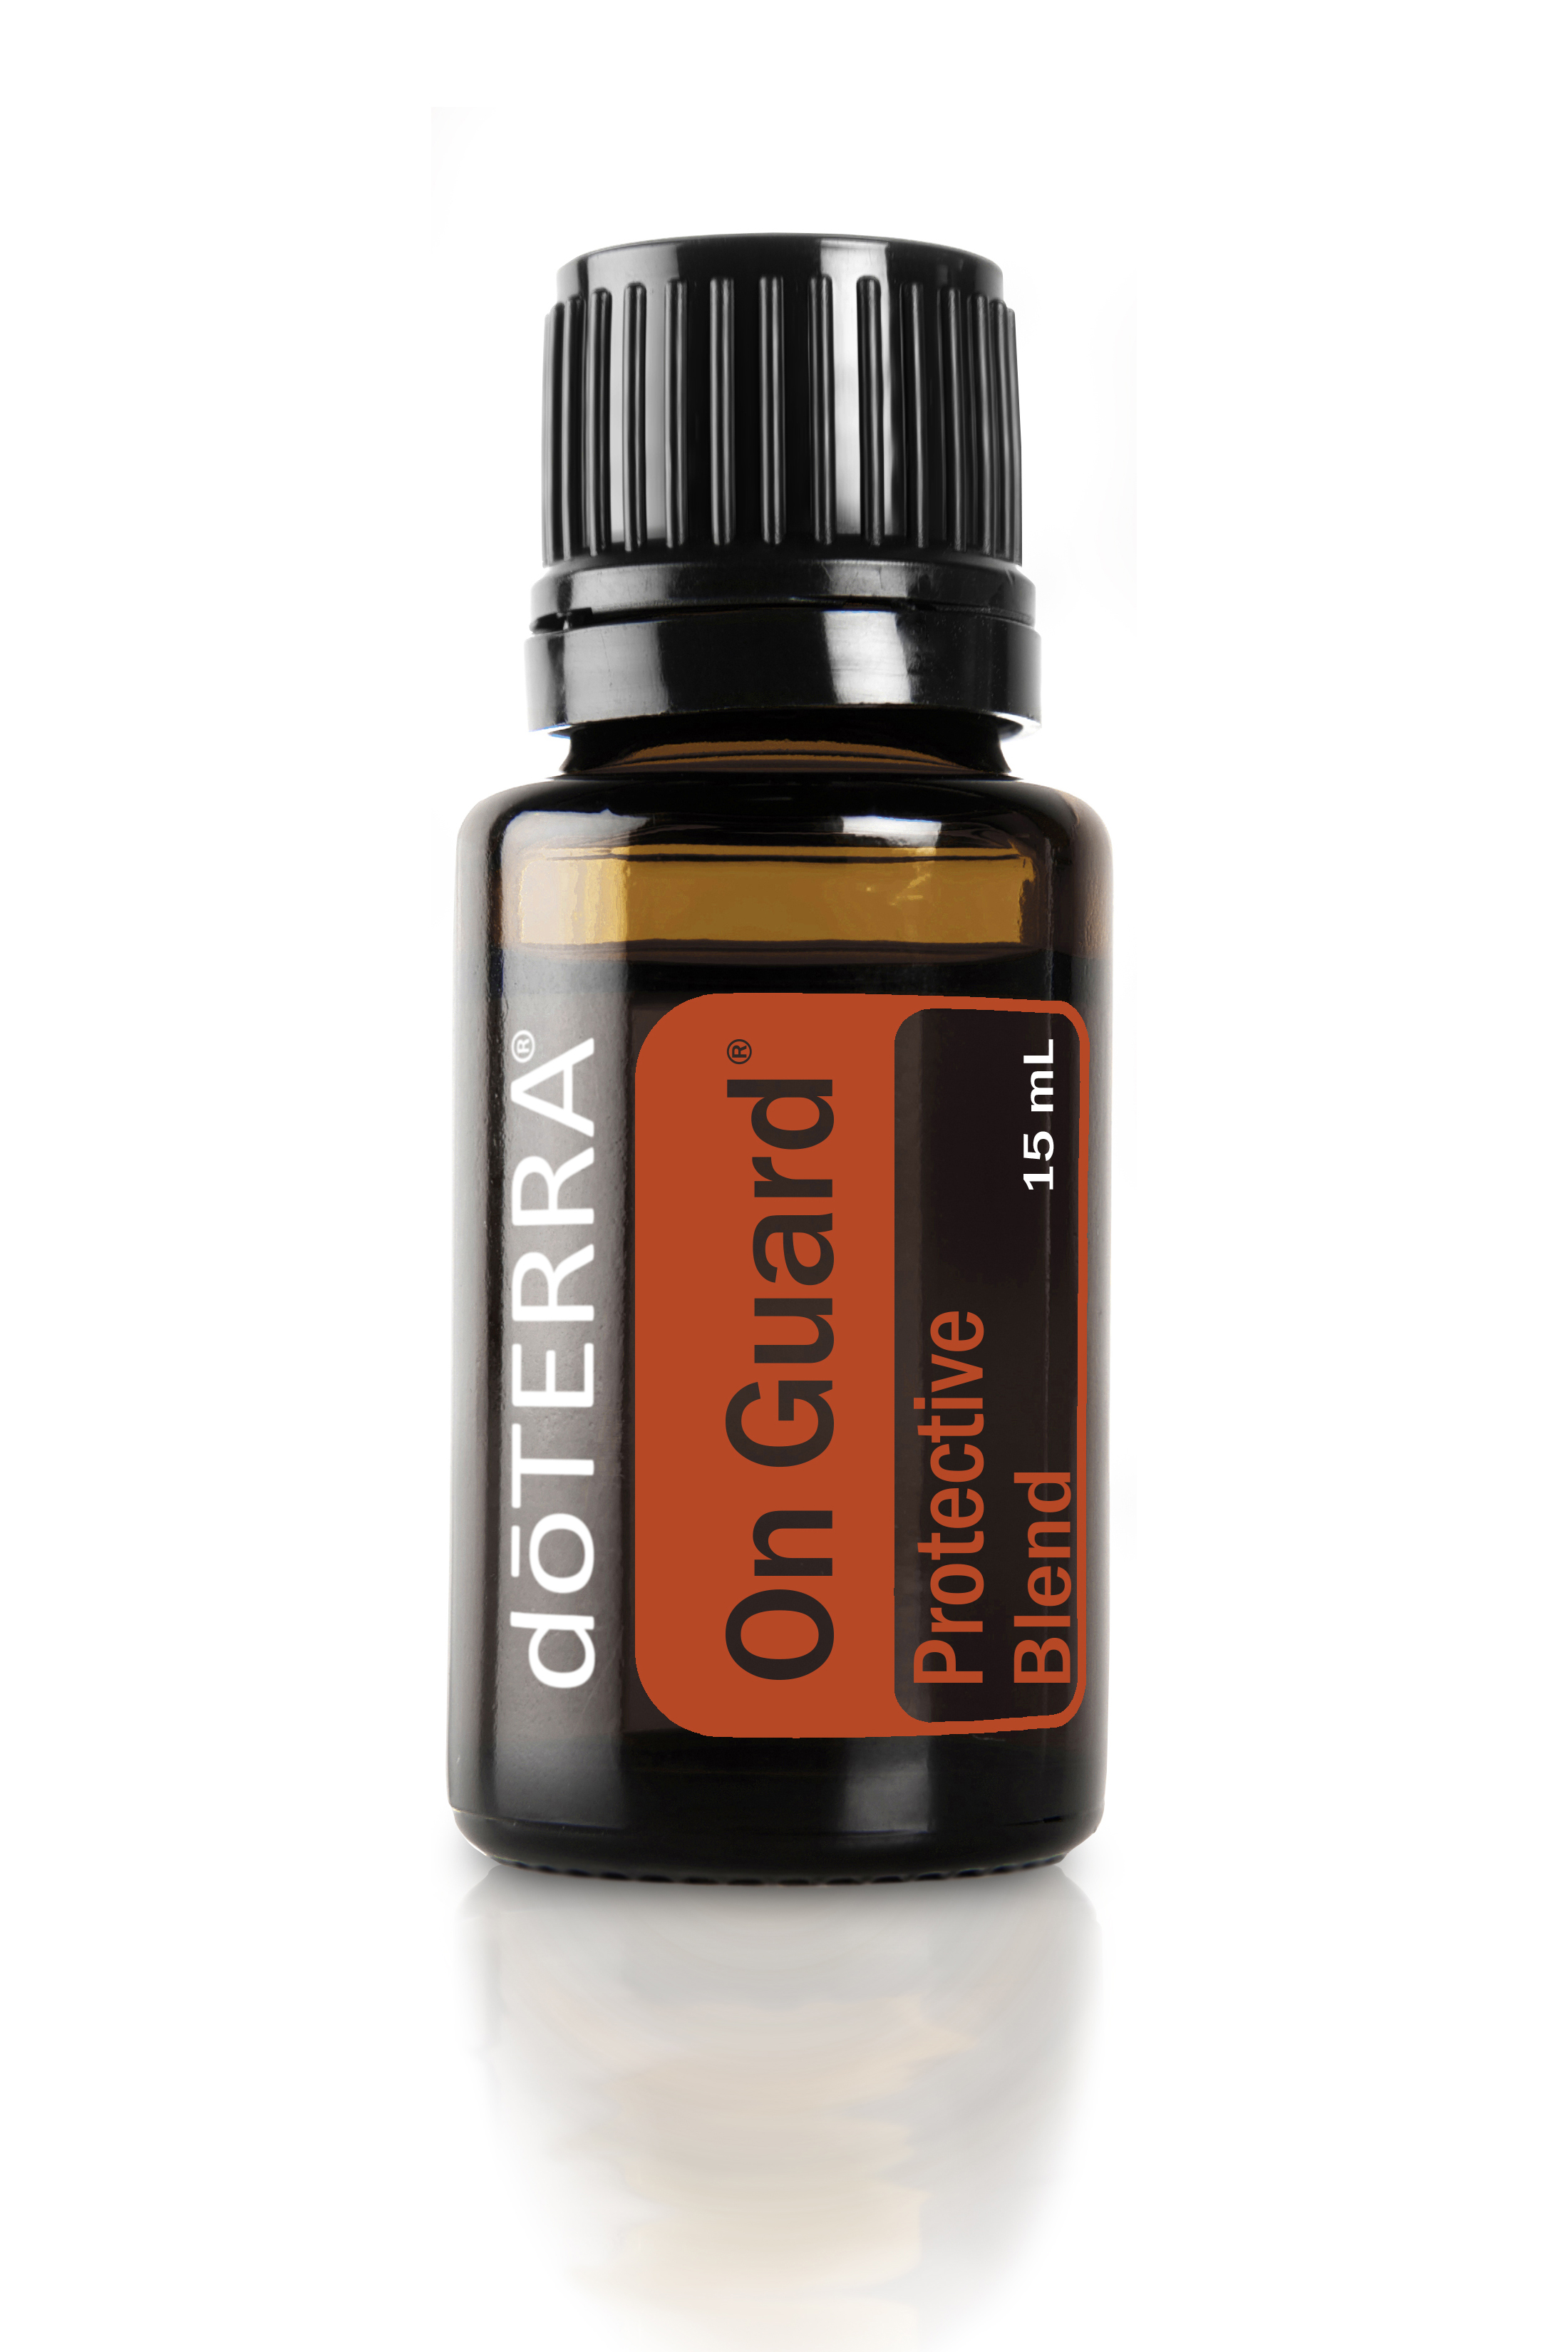 On Guard Essential Oil - doTERRA On Guard is a powerful proprietary blend that supports healthy immune function* and contains cleansing properties.